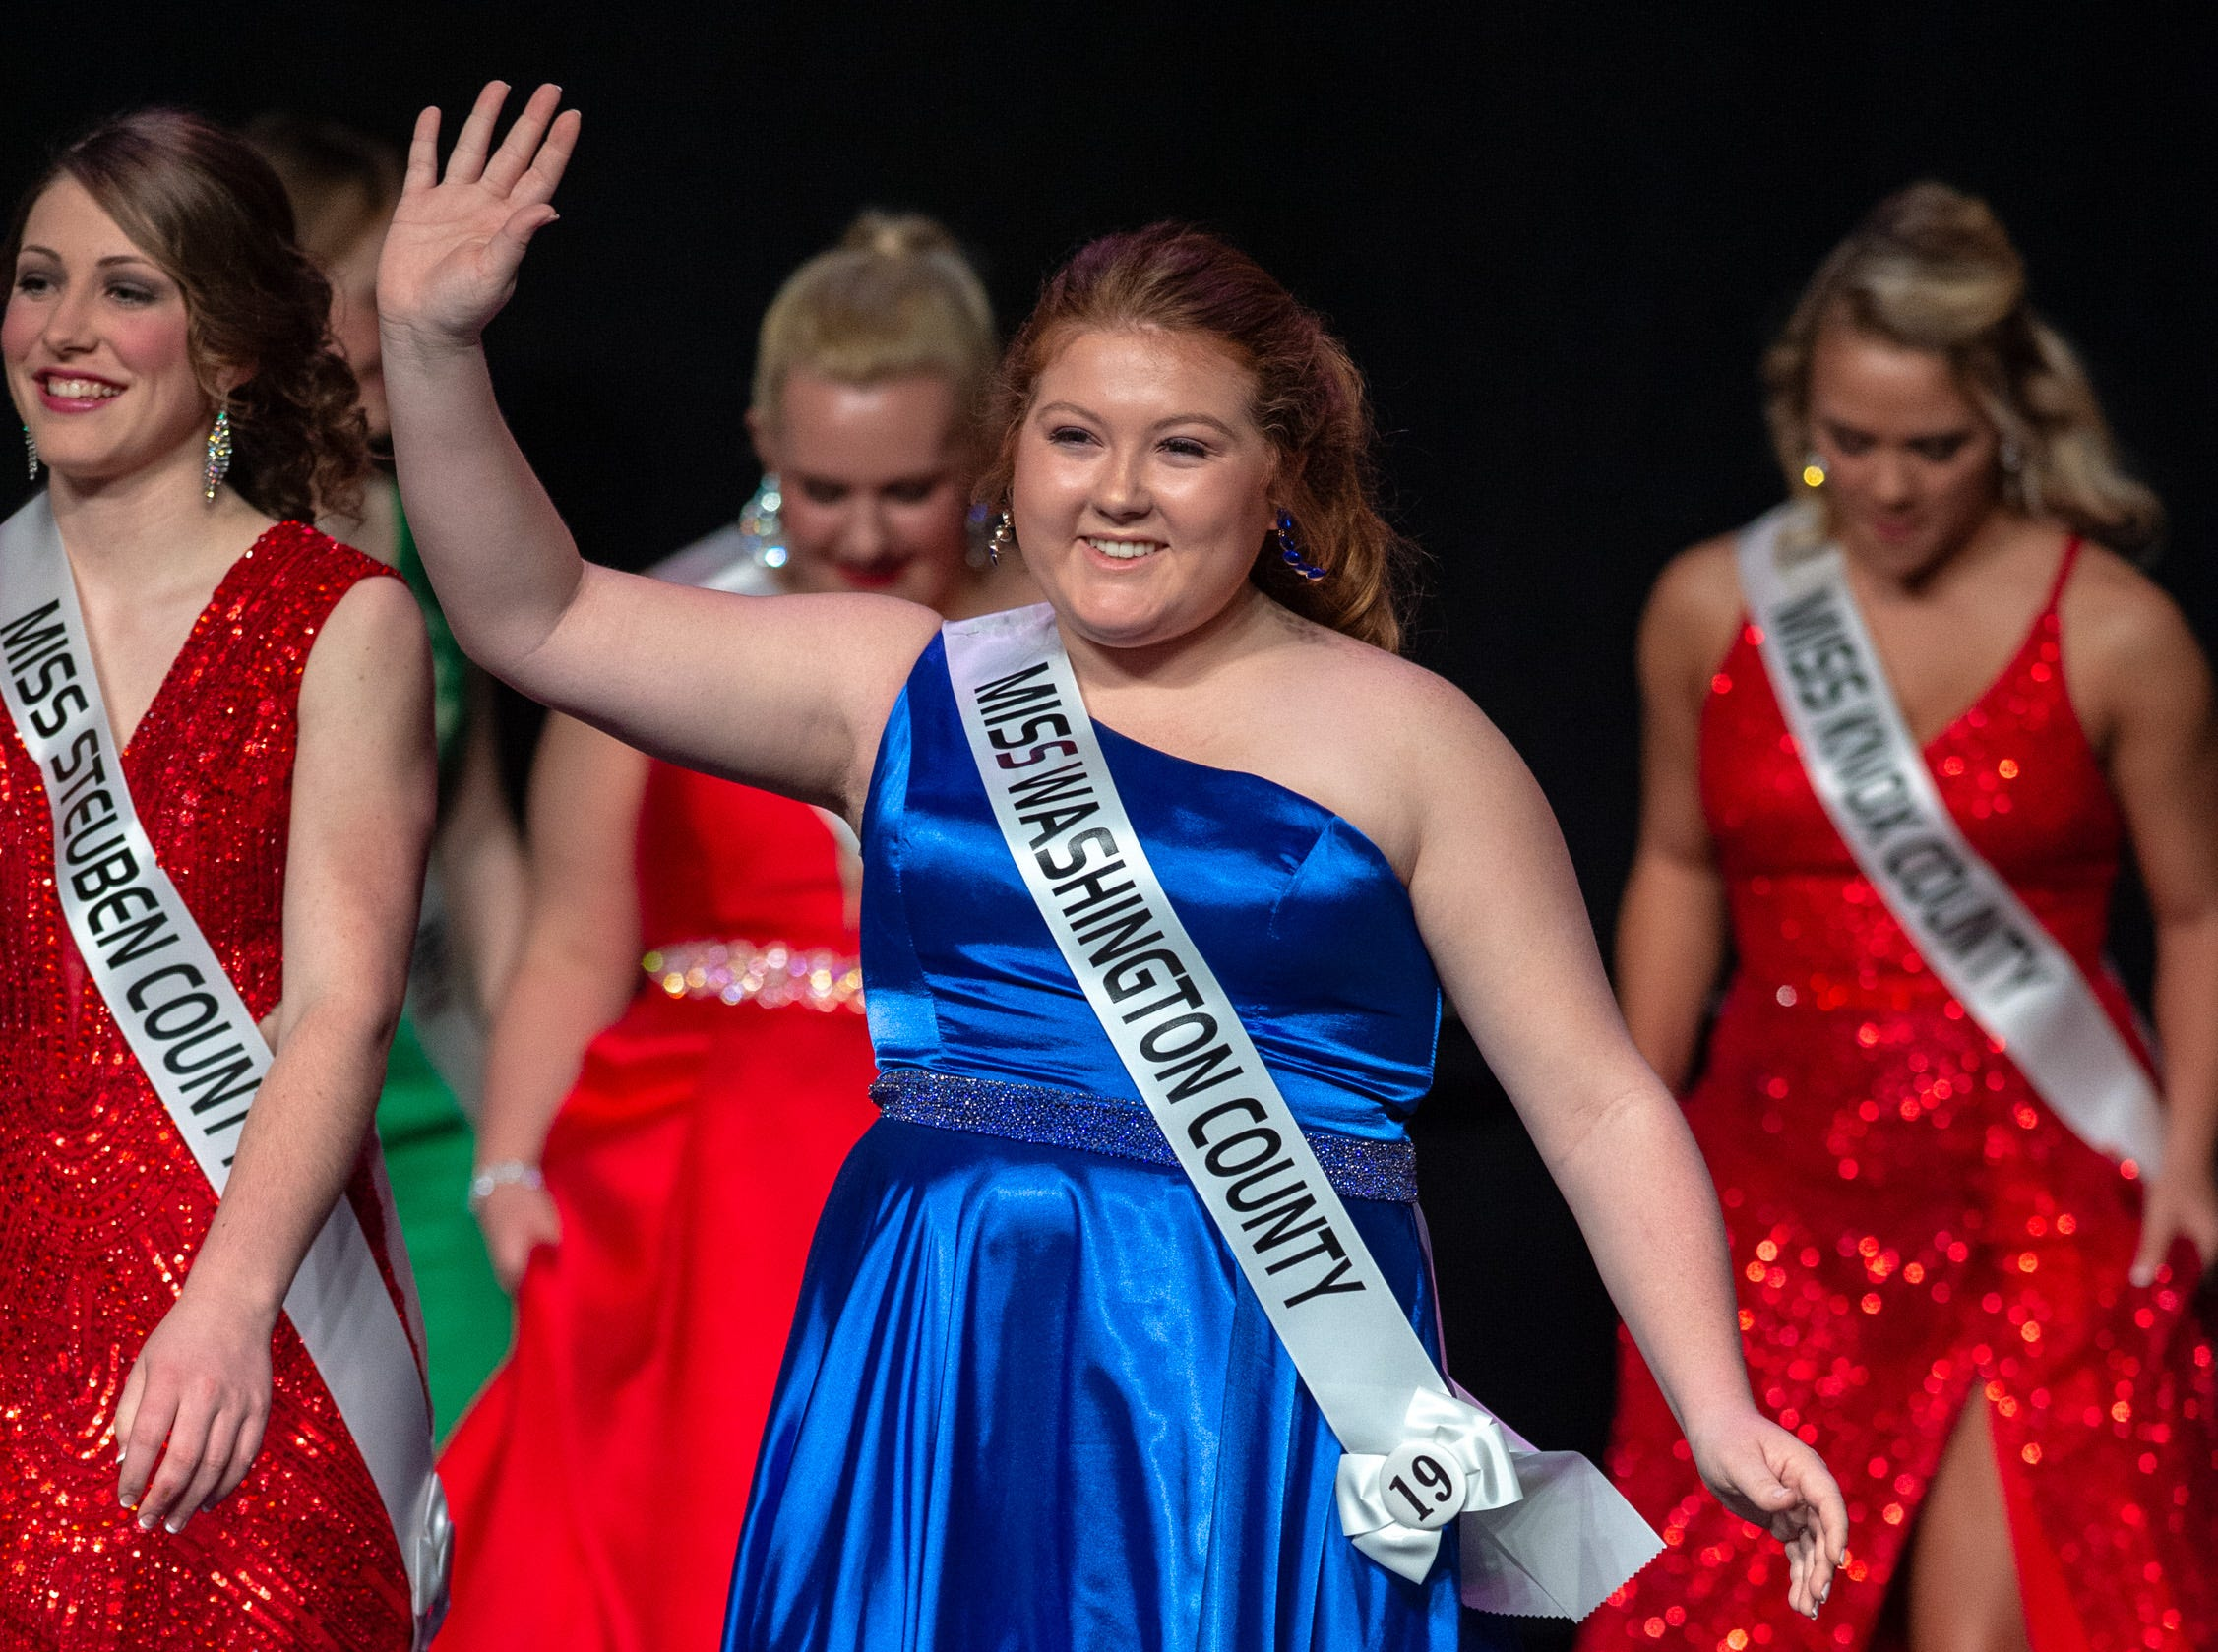 Miss Washington County, Kayla Rose, waves to the audience as she leaves the stage during the 61st Indiana State Fair Queen Pageant at the Indiana State Fairgrounds in Indianapolis on Sunday, Jan. 6, 2019.